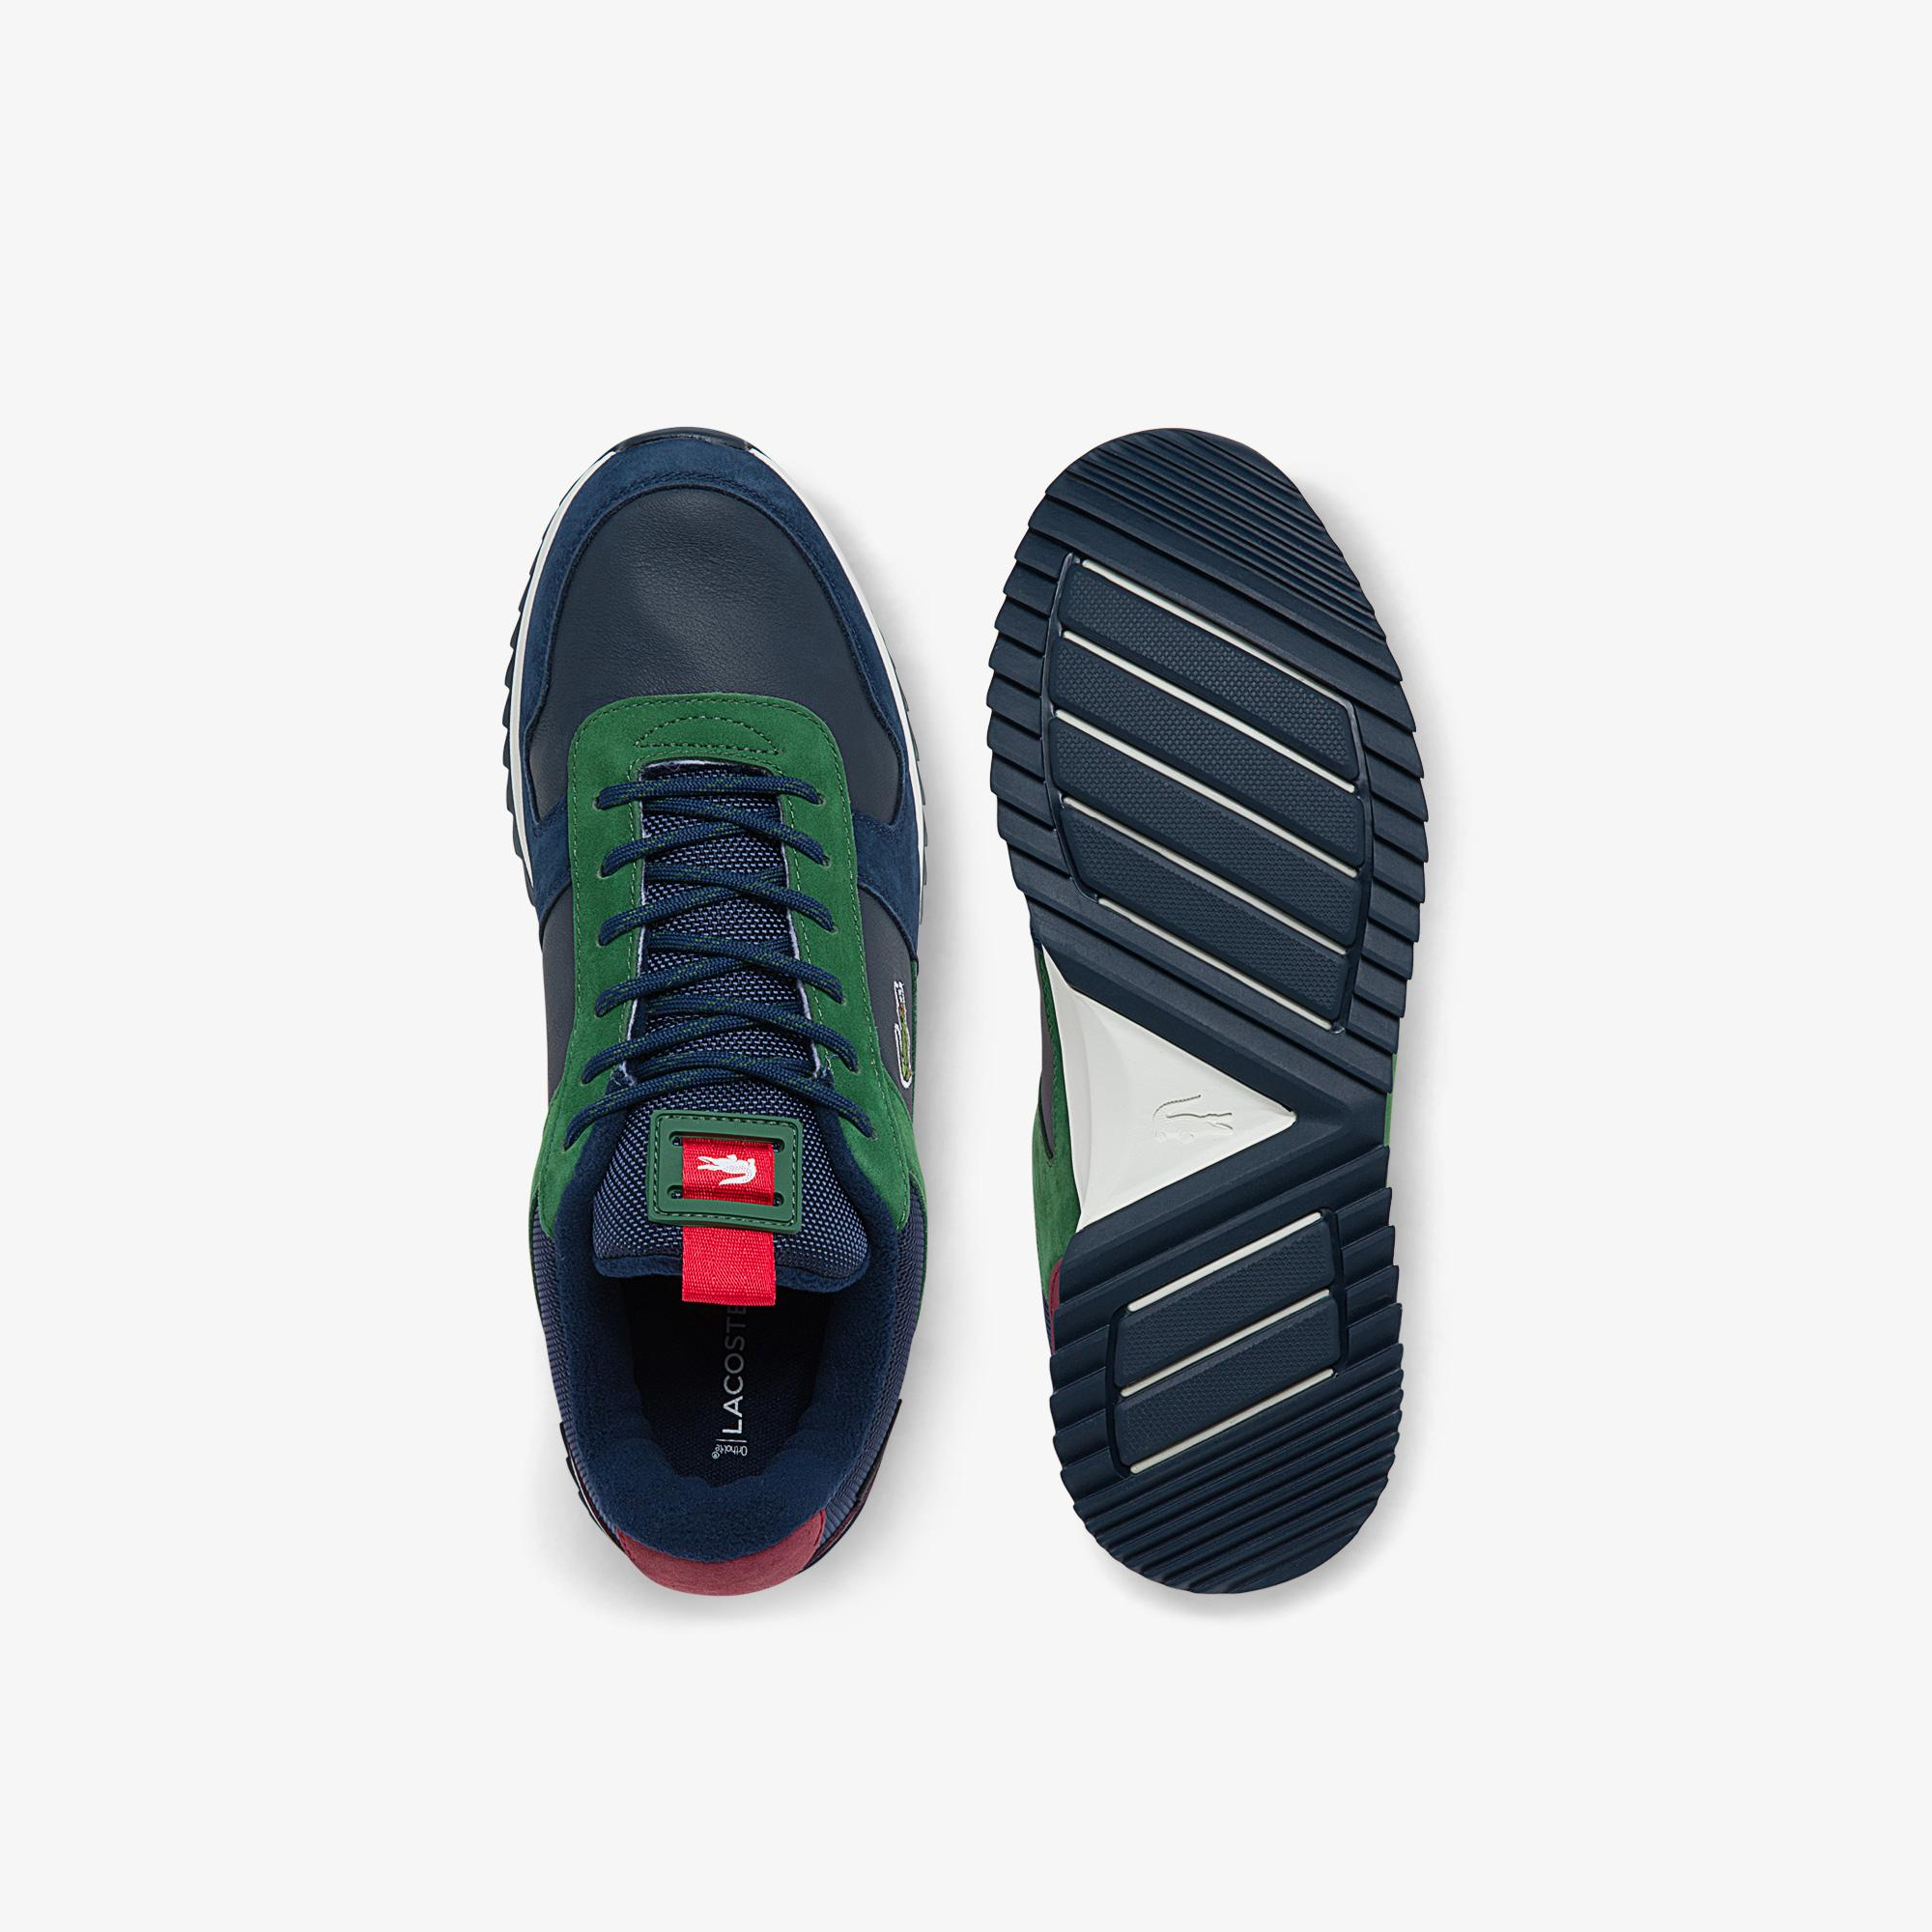 Lacoste Men's Joggeur 2.0 Leather and Textile Sneakers